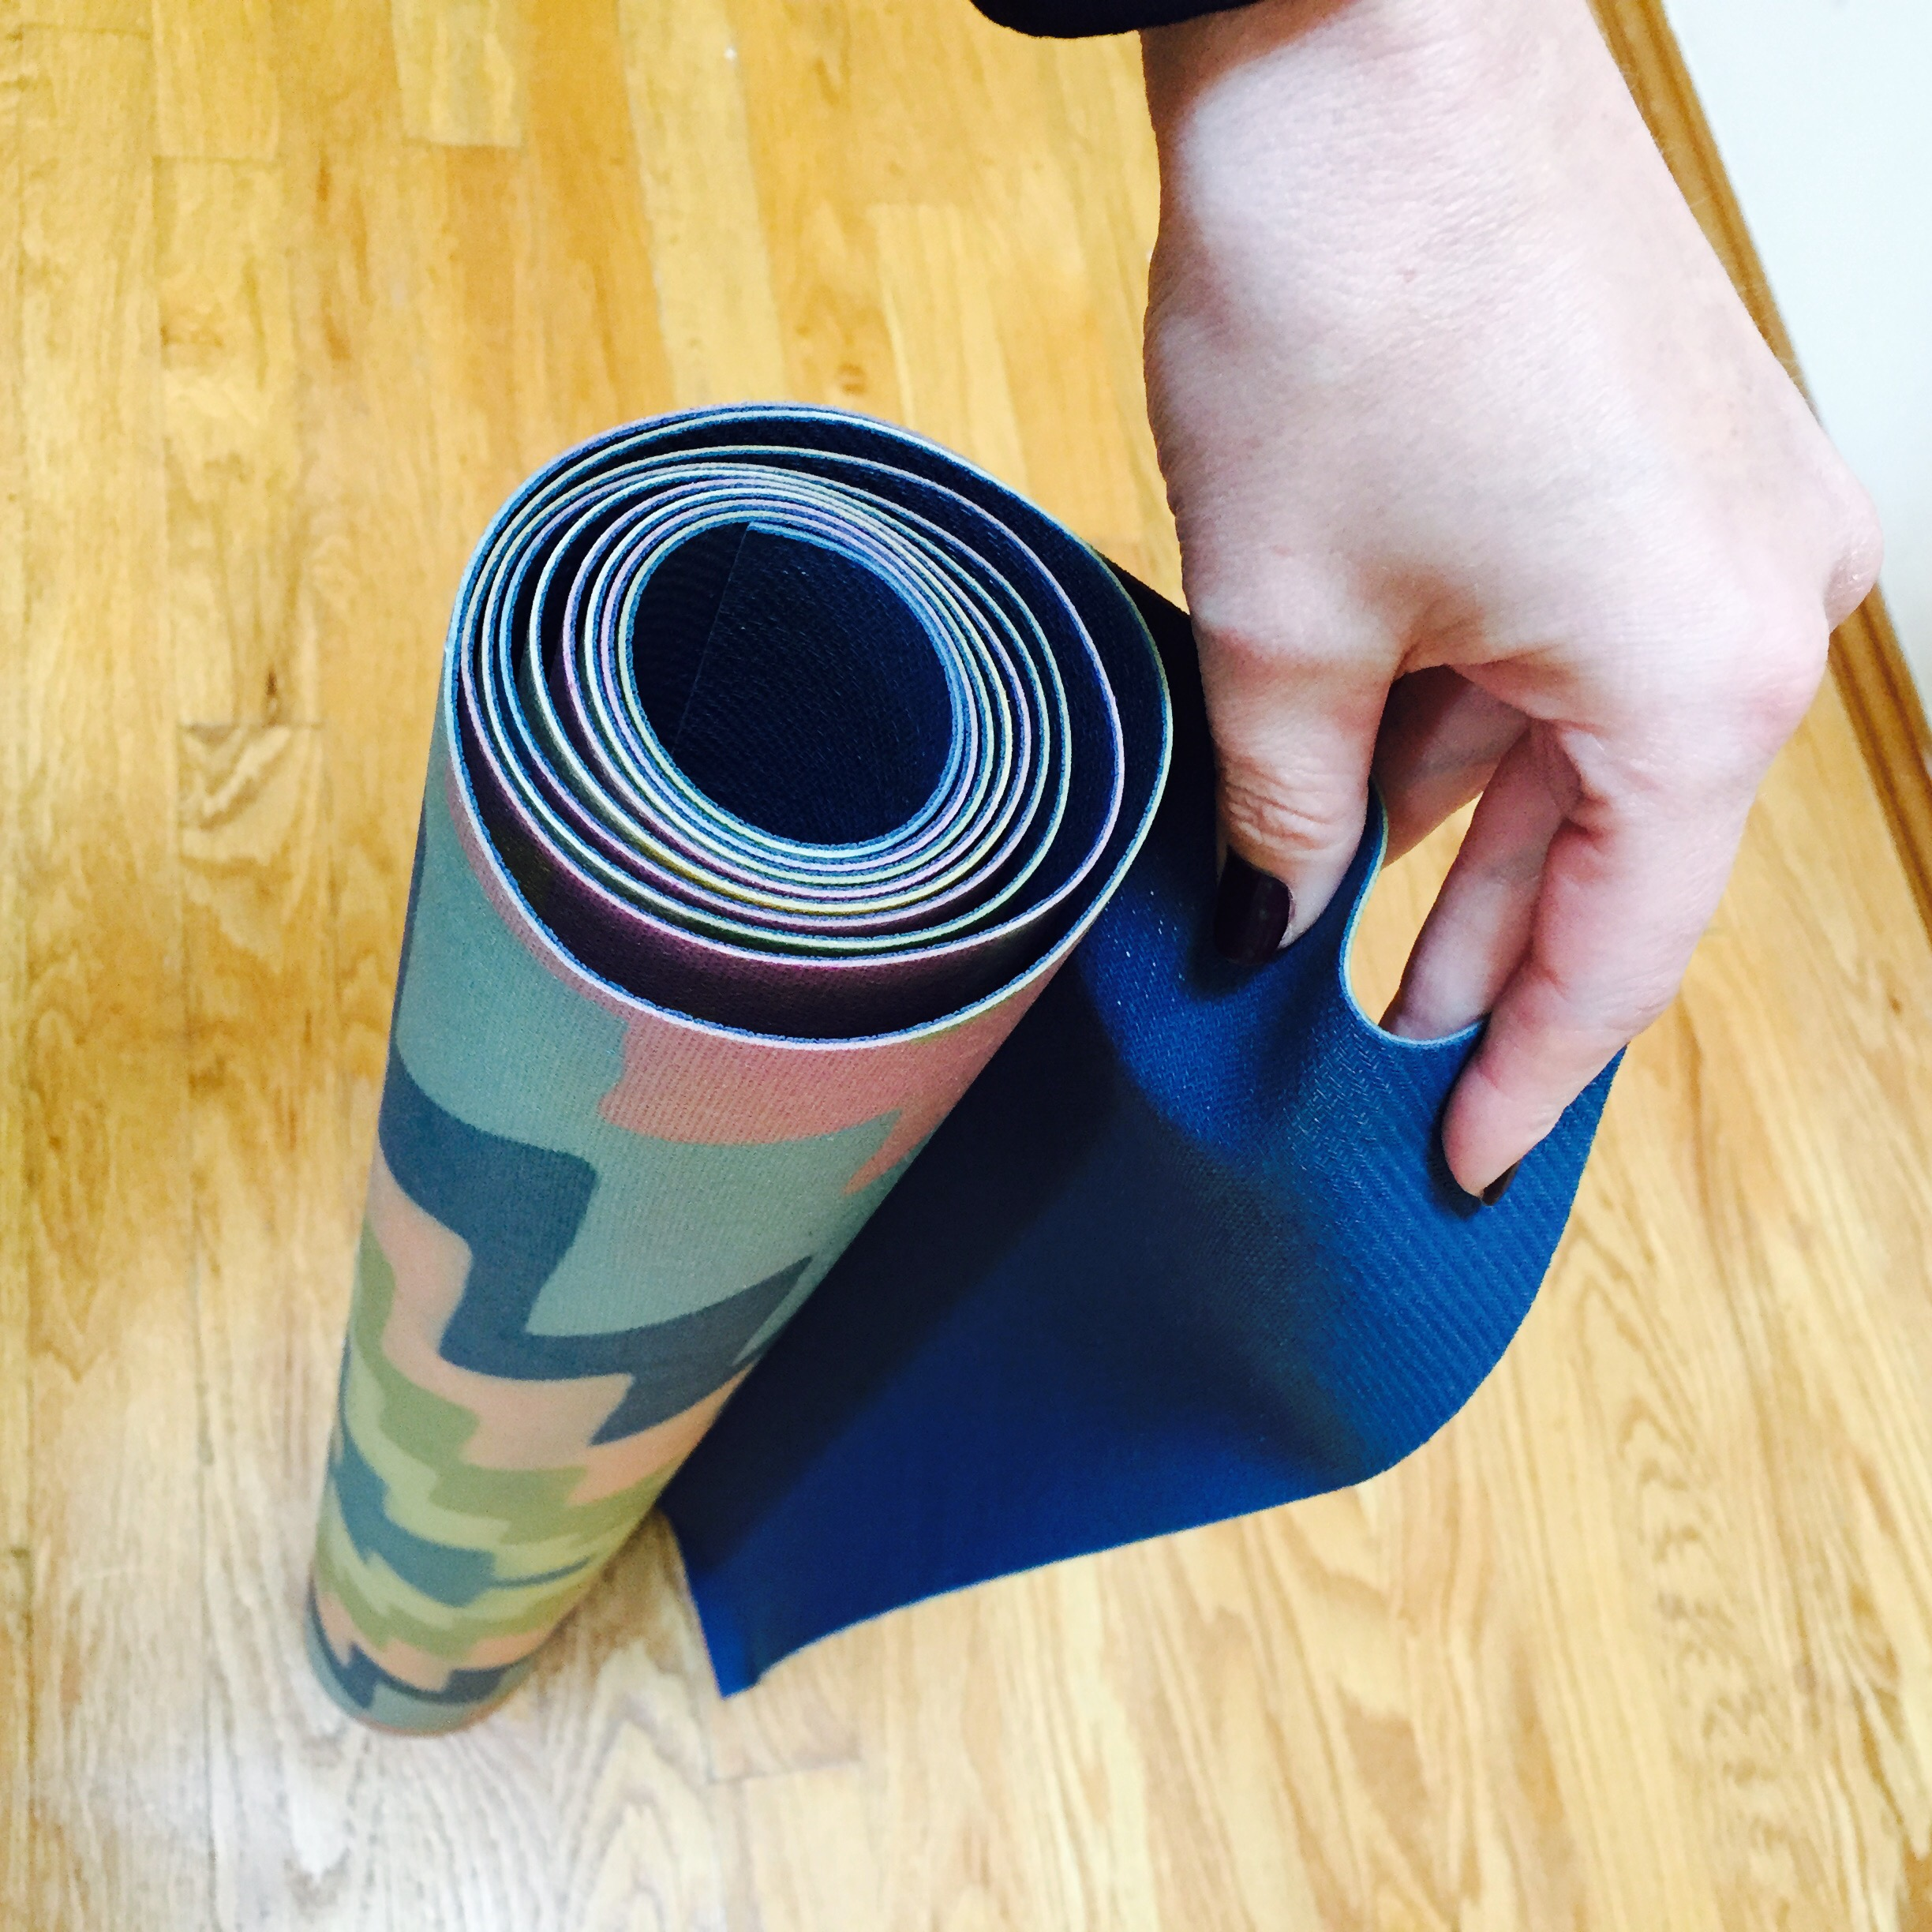 Fitness Review: PrAna Belize Printed Yoga Mat